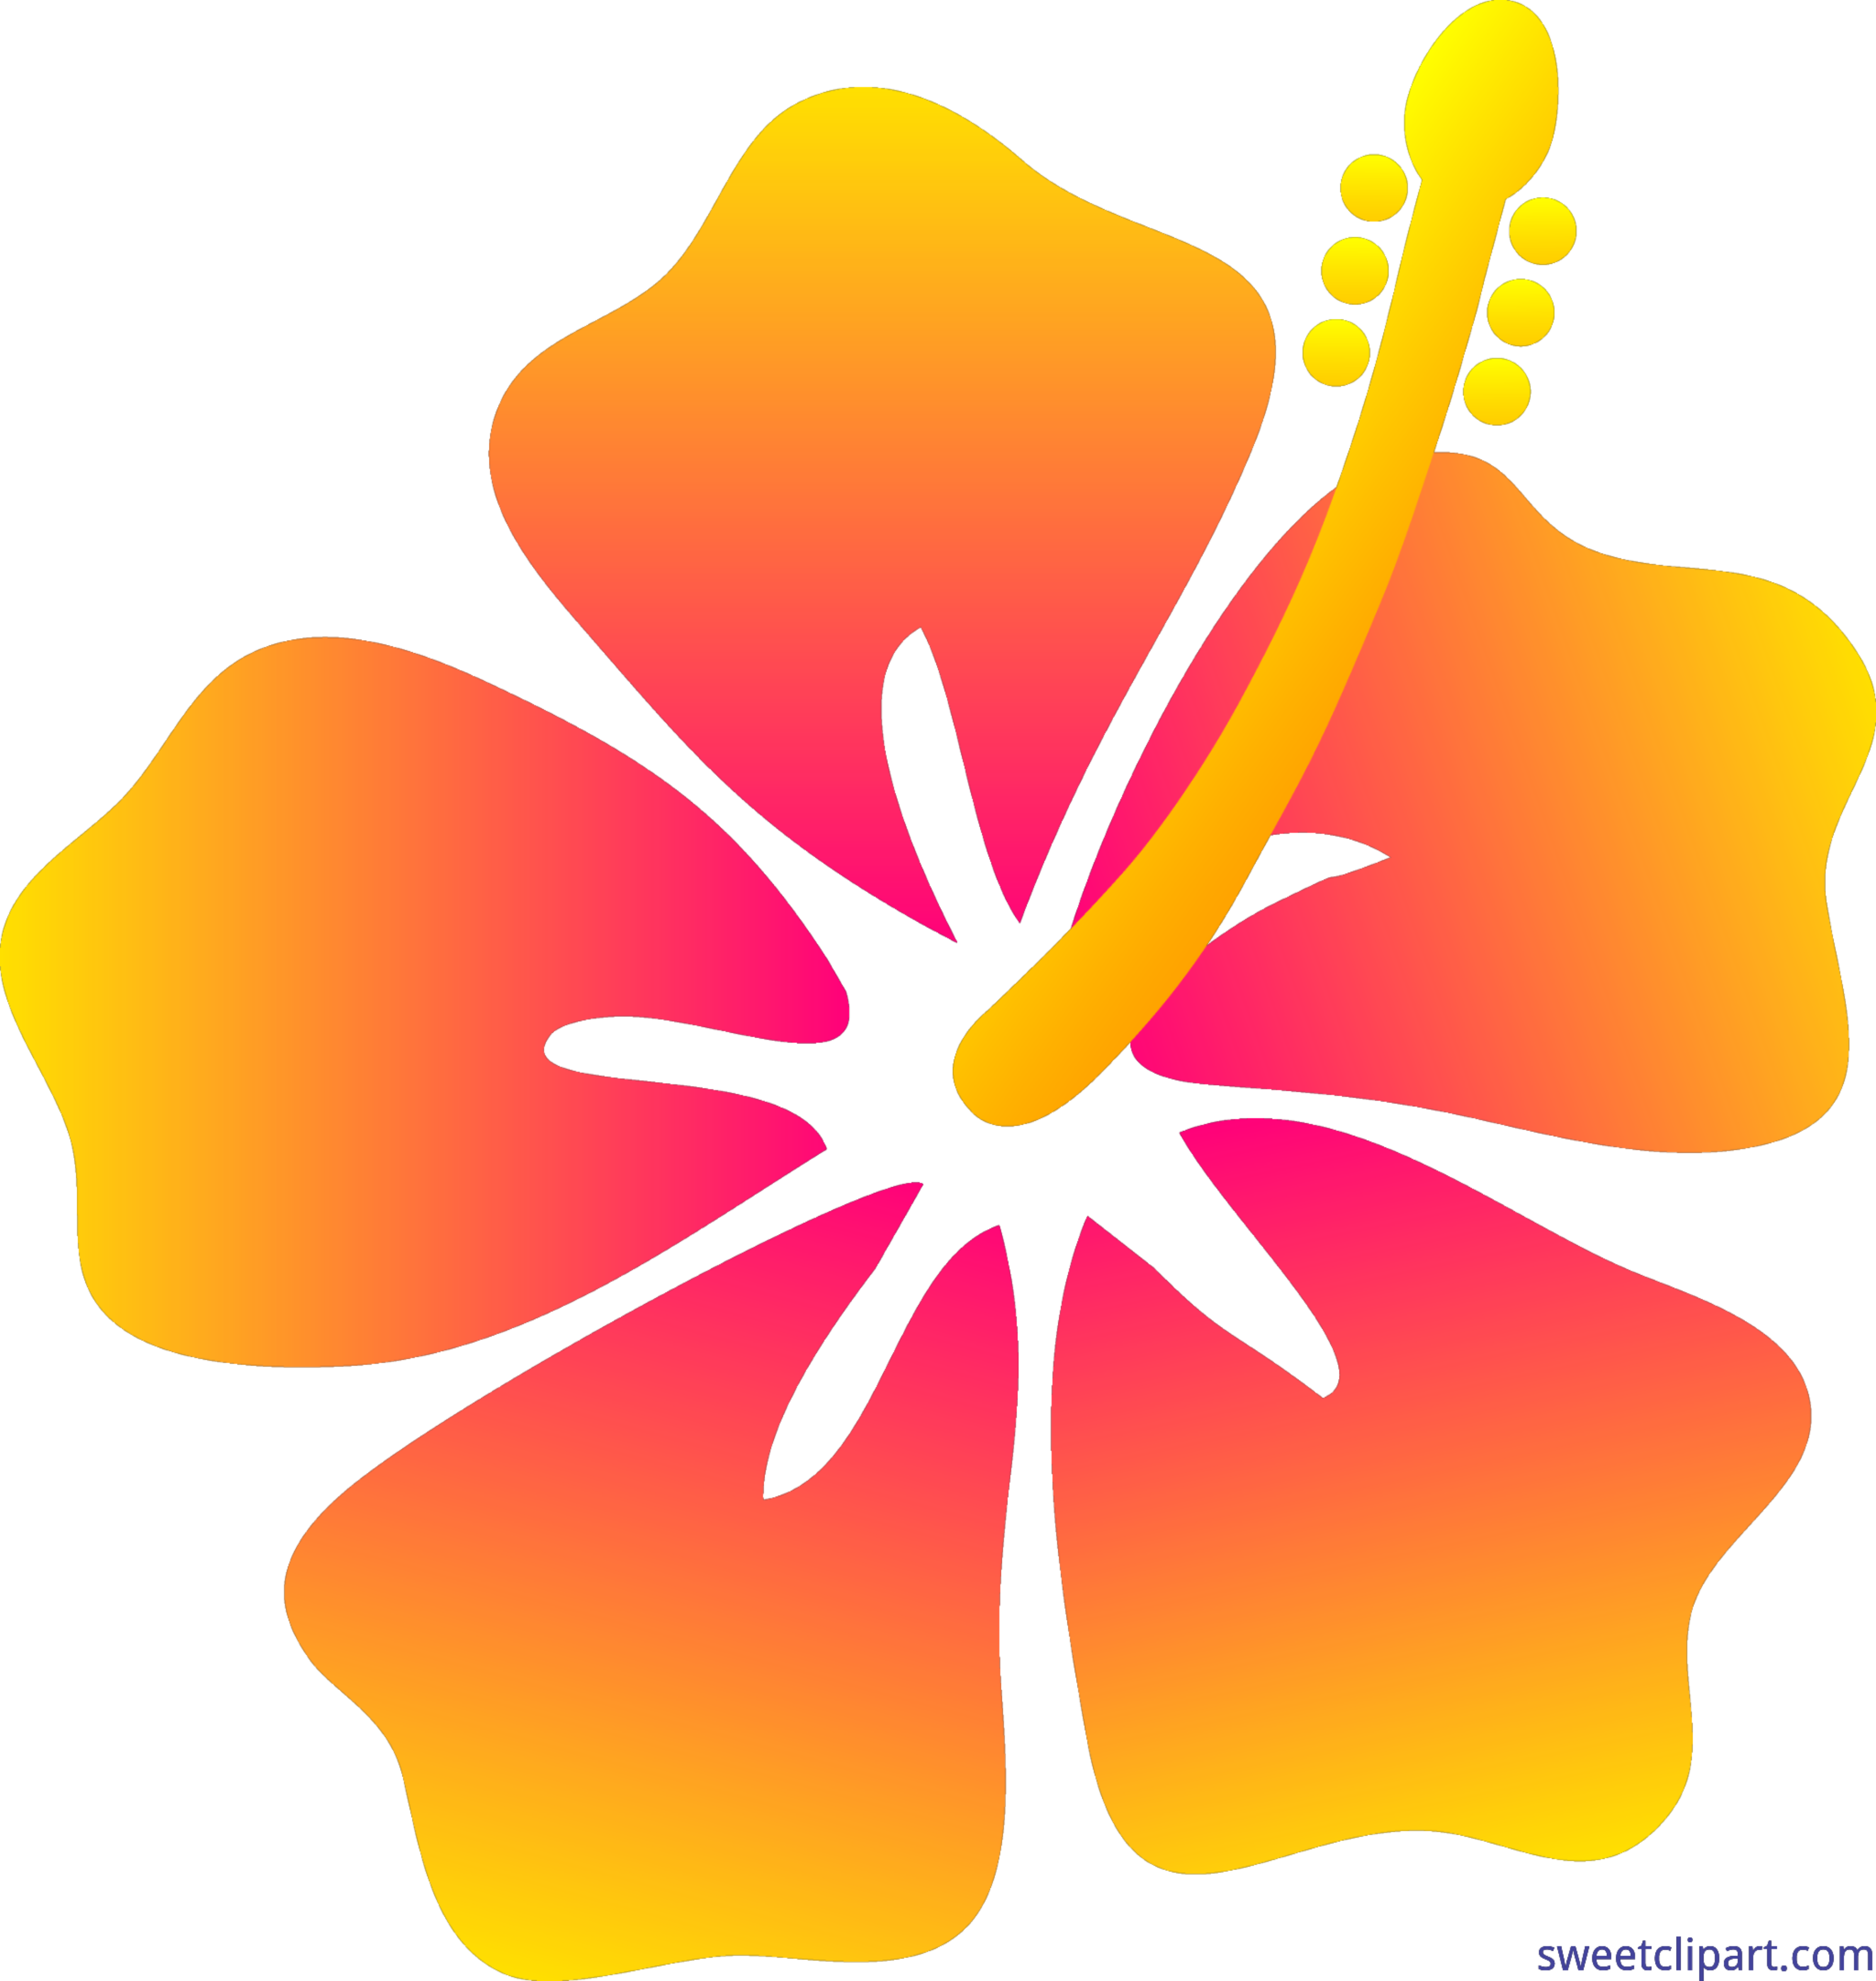 Hibiscus clipart real. Flower clip art sweet